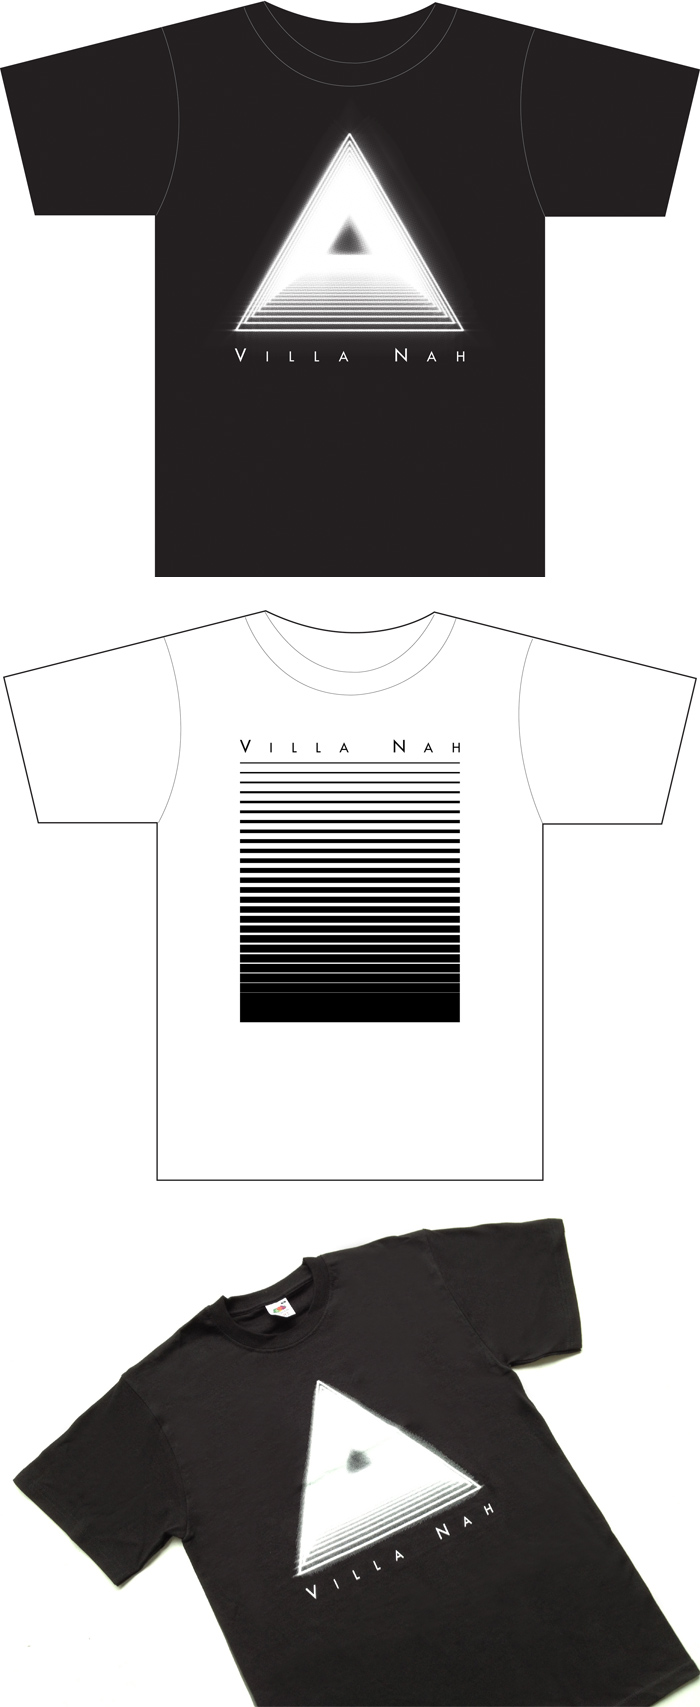 Villa Nah UK Tour T-Shirts